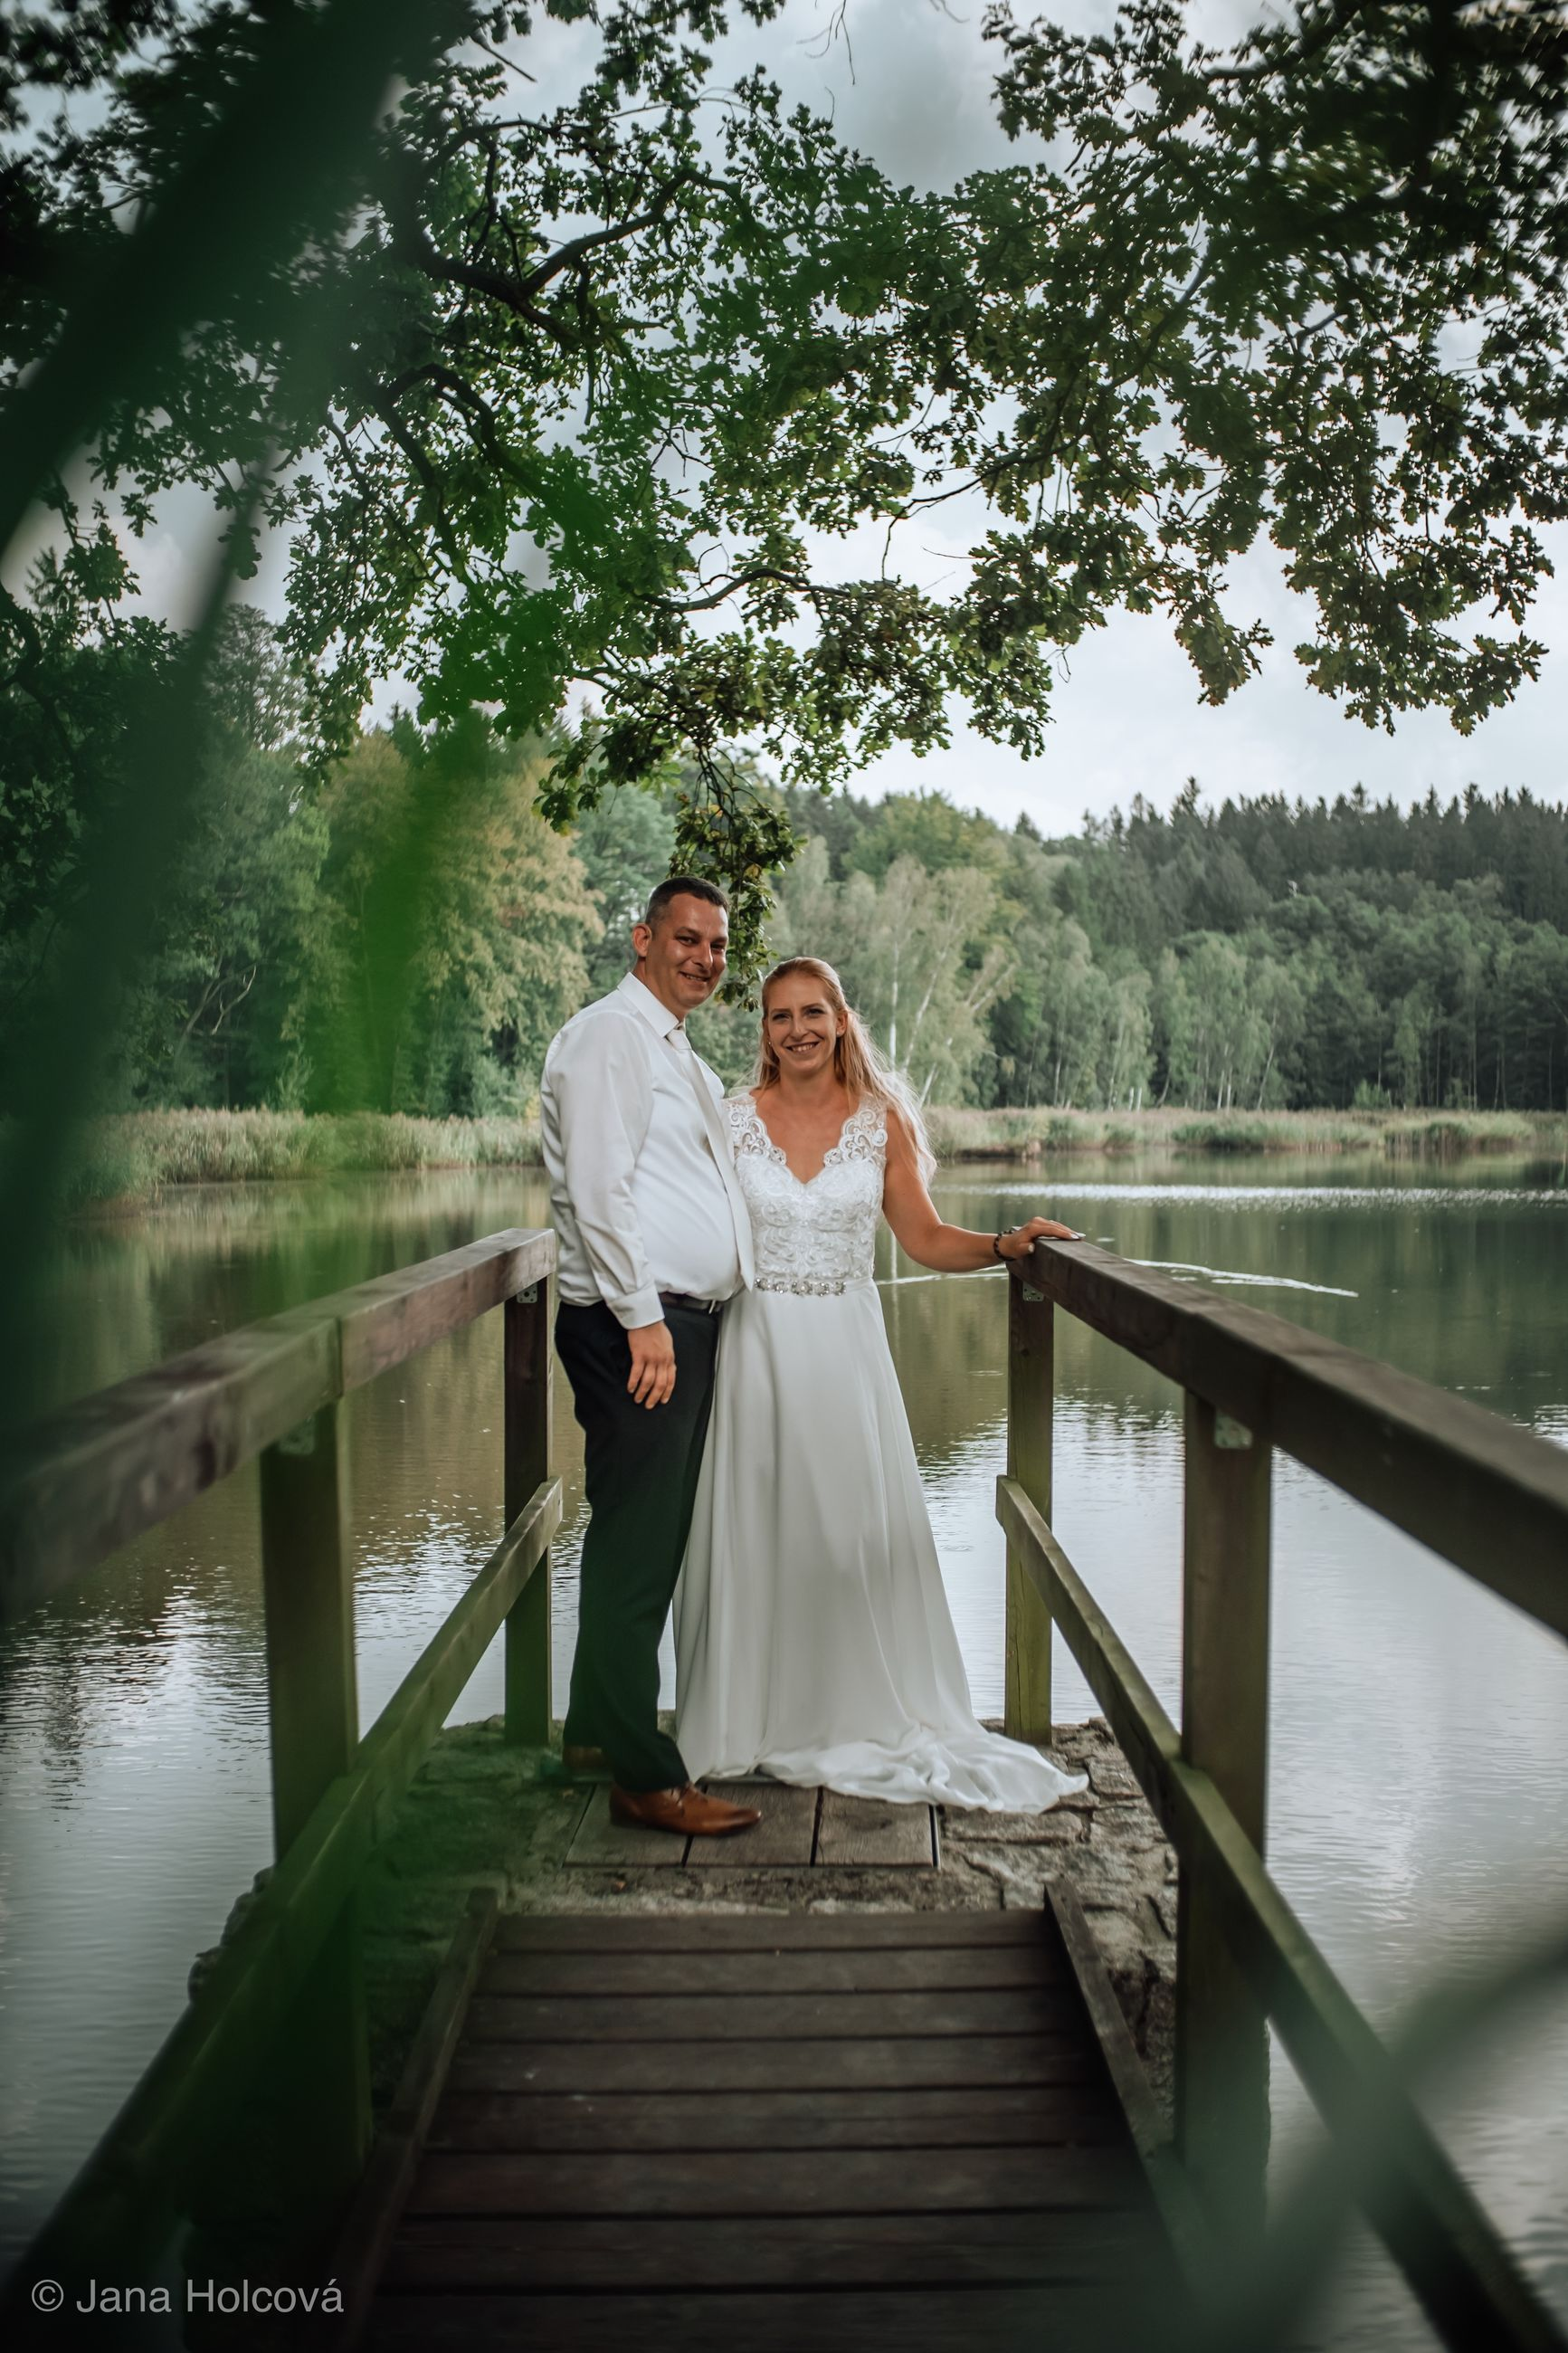 love, women, water, couple - relationship, two people, bride, wedding dress, adult, togetherness, wedding, life events, emotion, real people, newlywed, men, lake, positive emotion, bridegroom, tree, mature men